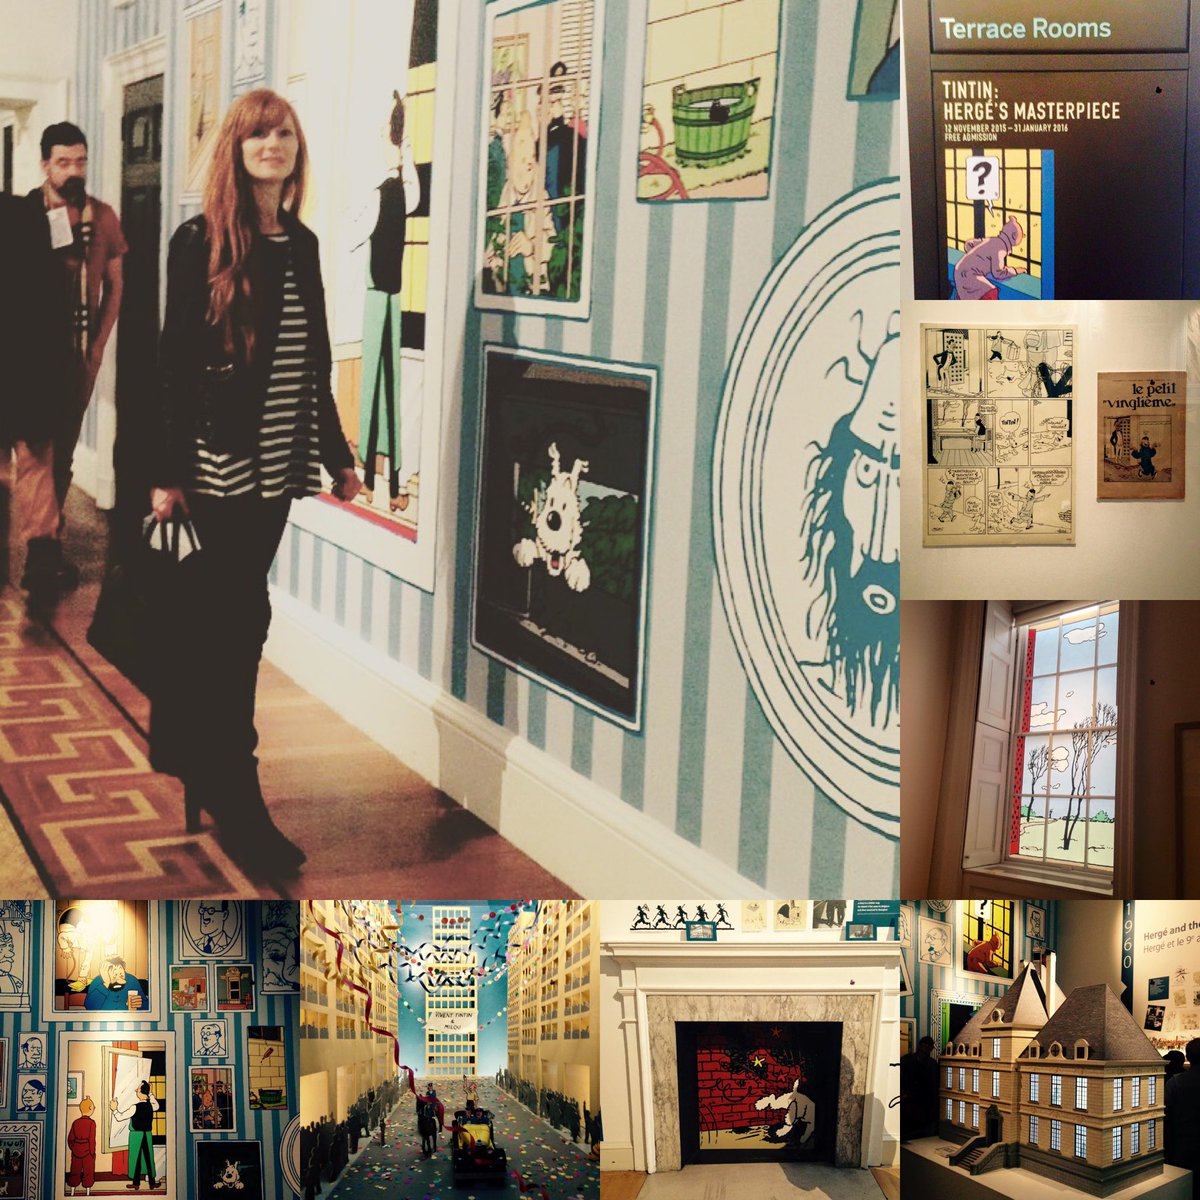 It's no secret I'm a big fan of #animation history.  (🎧You can hear some of my @BBCRadio4 docs on @Disney, #CosgroveHall & more here: )  Pics #OnThisDay 5yrs ago @SomersetHouse's brilliant #Tintin exhibition. Can't wait to go to museums & galleries again.